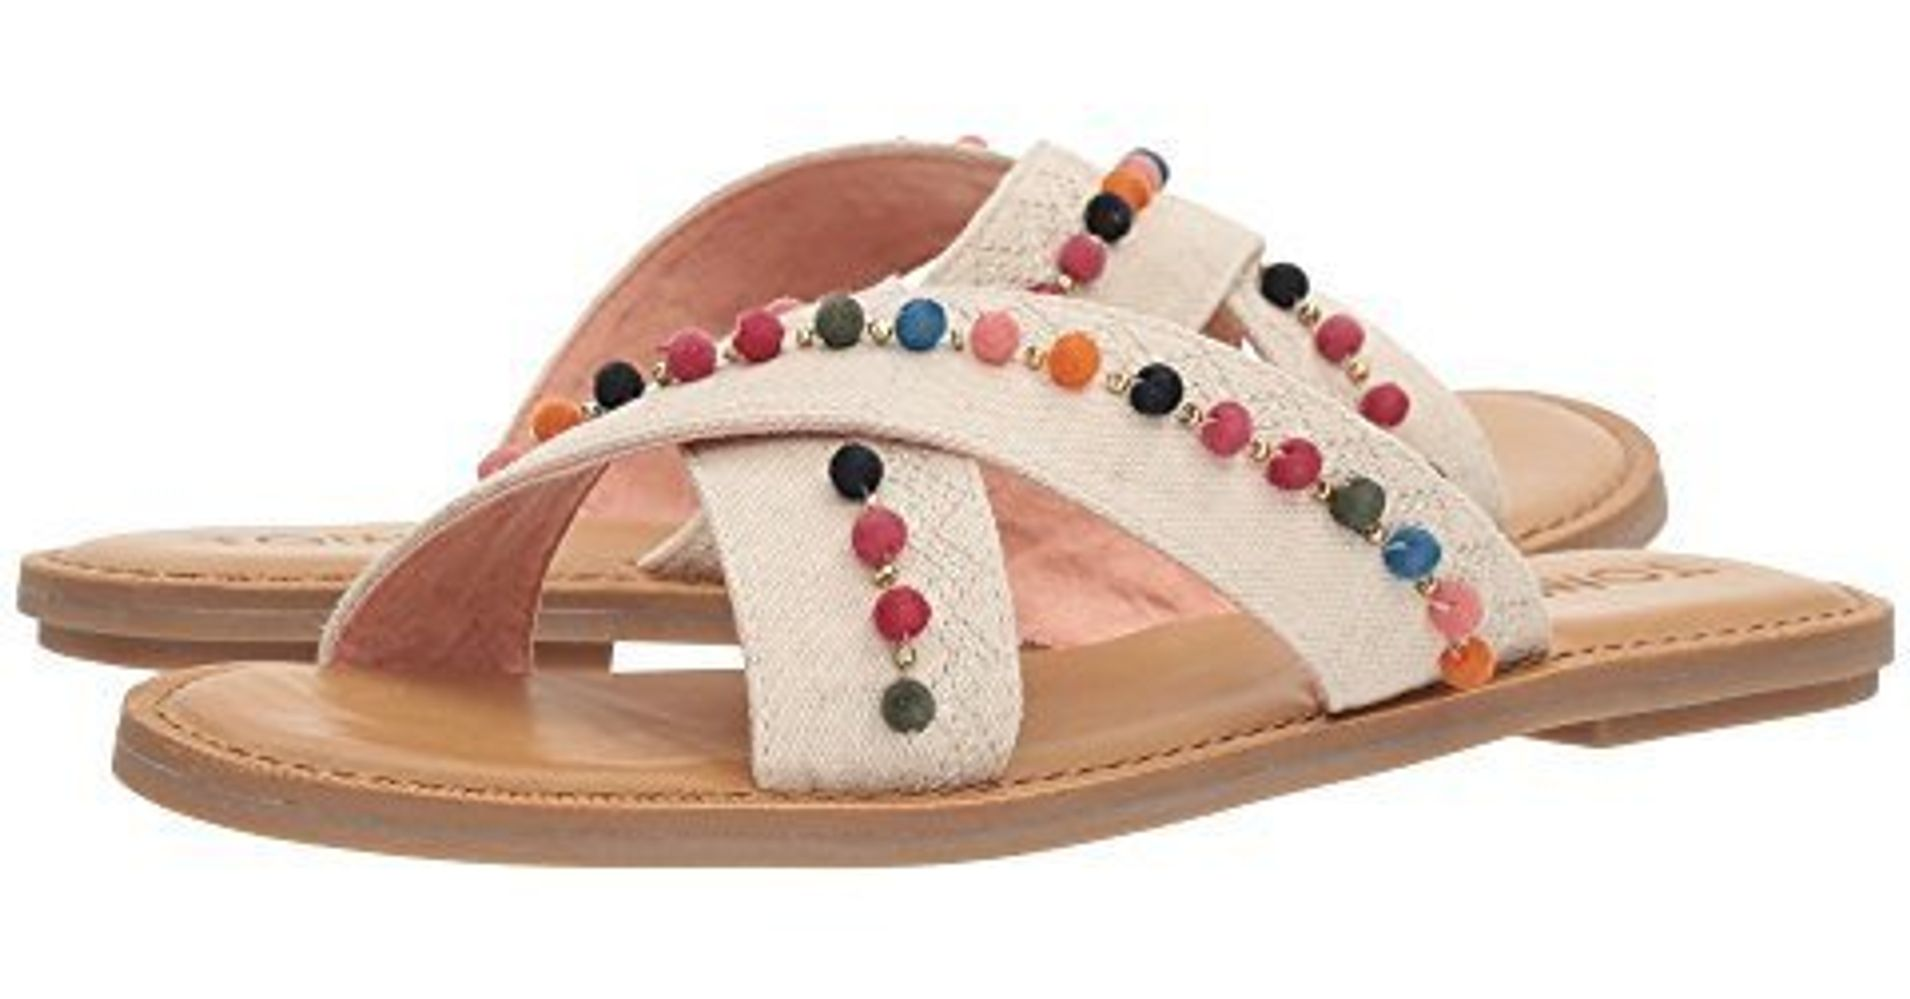 38a27b929 Zappos s 11 Best-Selling Sandals For All Your Summer Footwear Needs ...